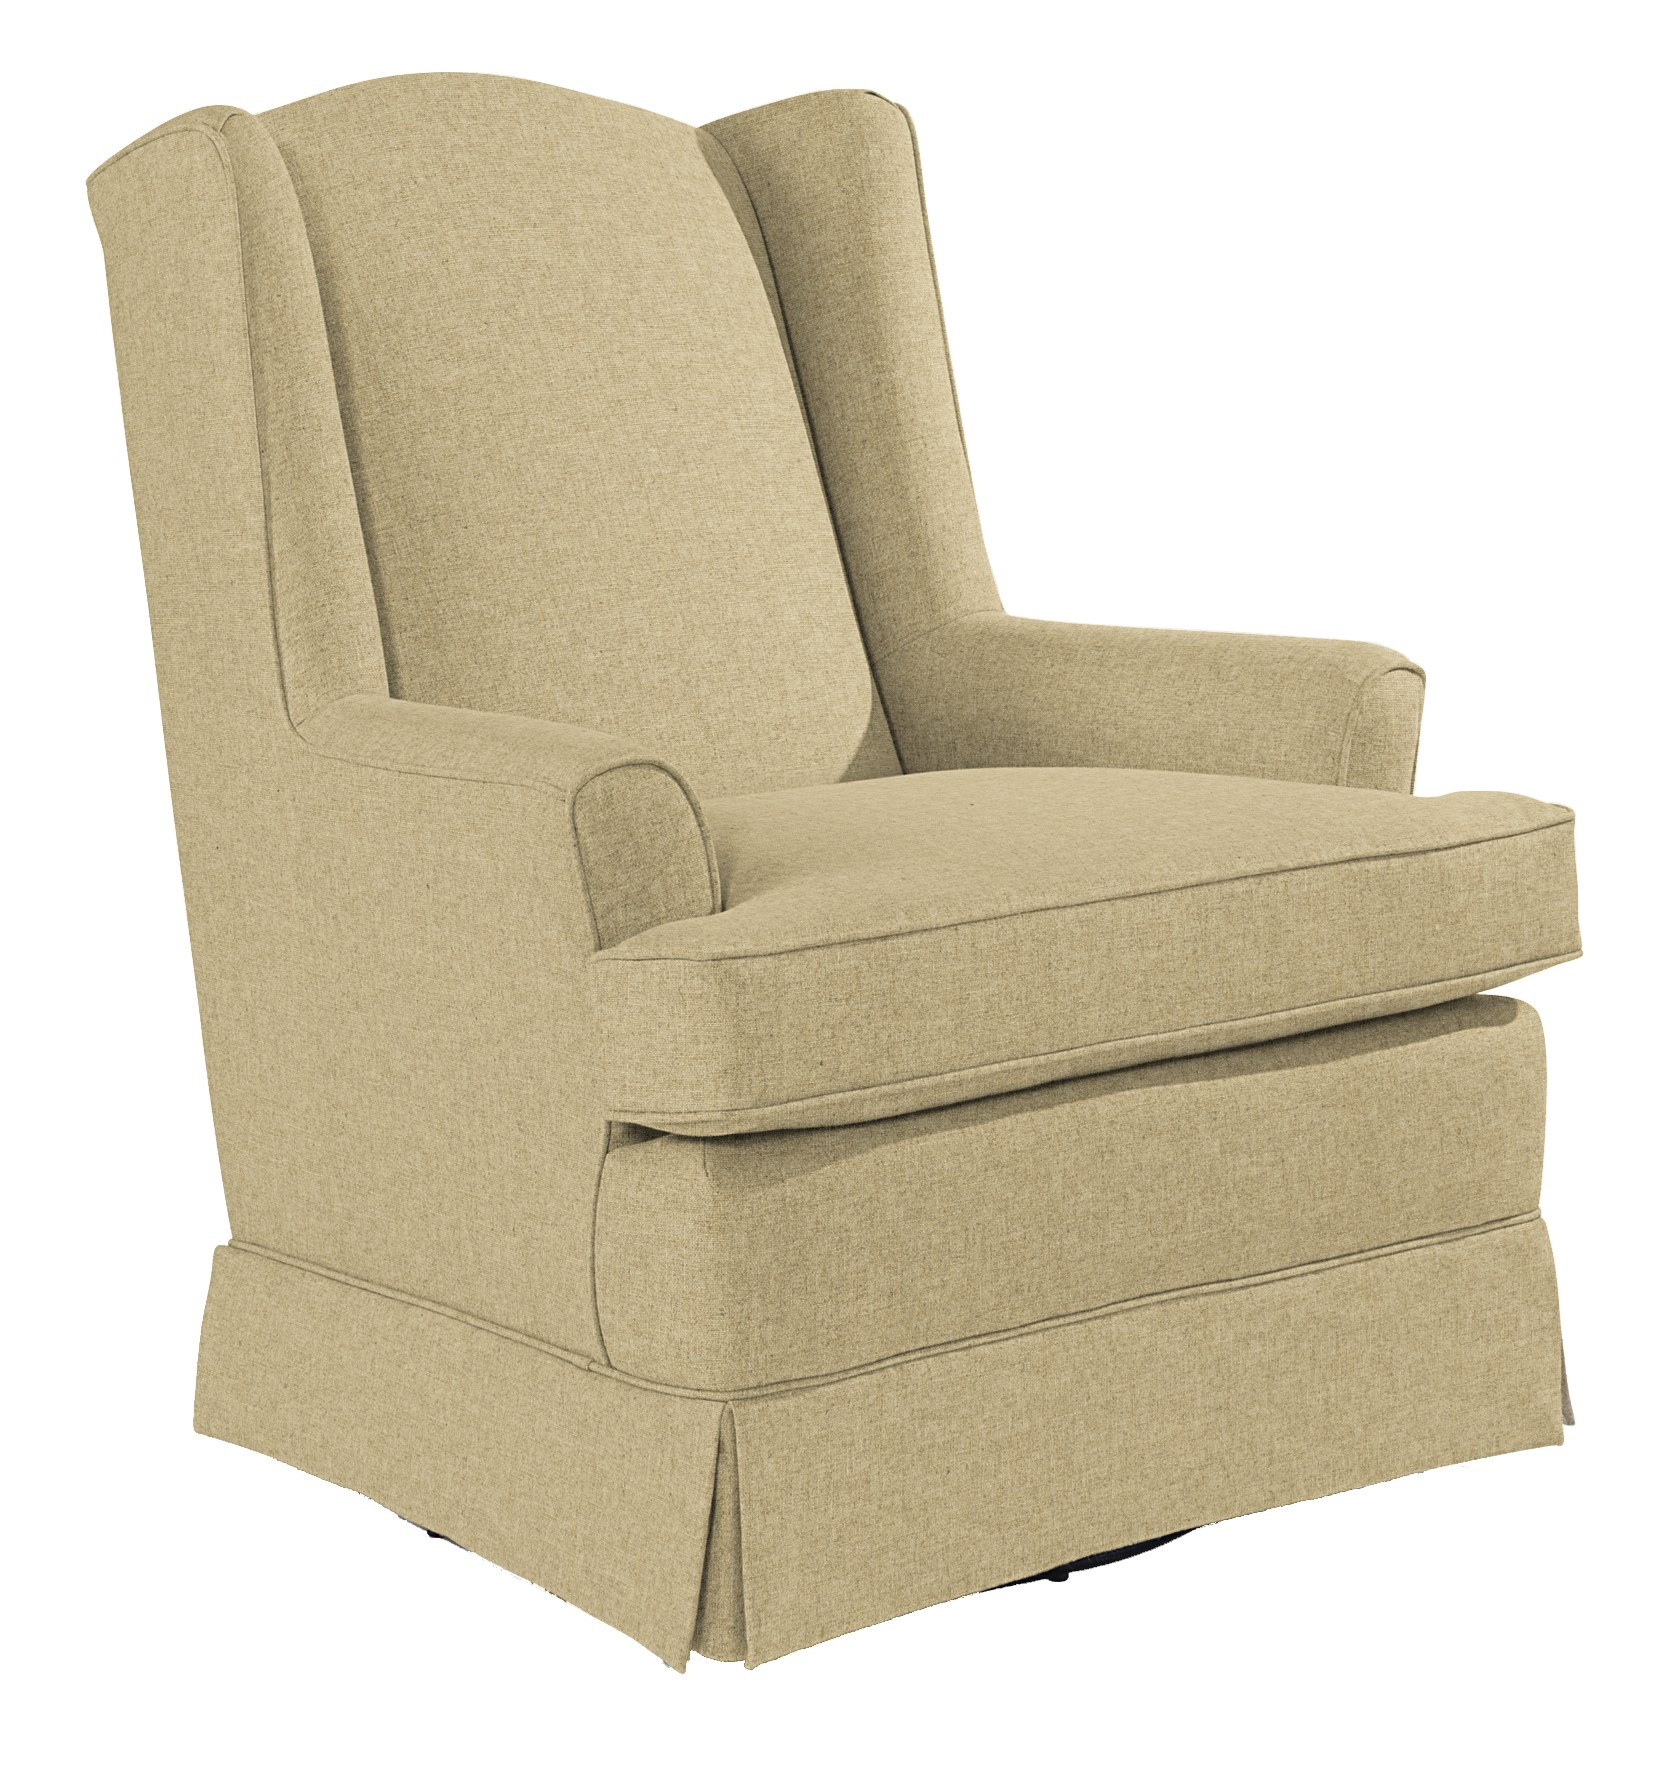 Best Home Furnishings Chairs - Swivel Glide Natasha Swivel Glider - Item Number: 7147-34159